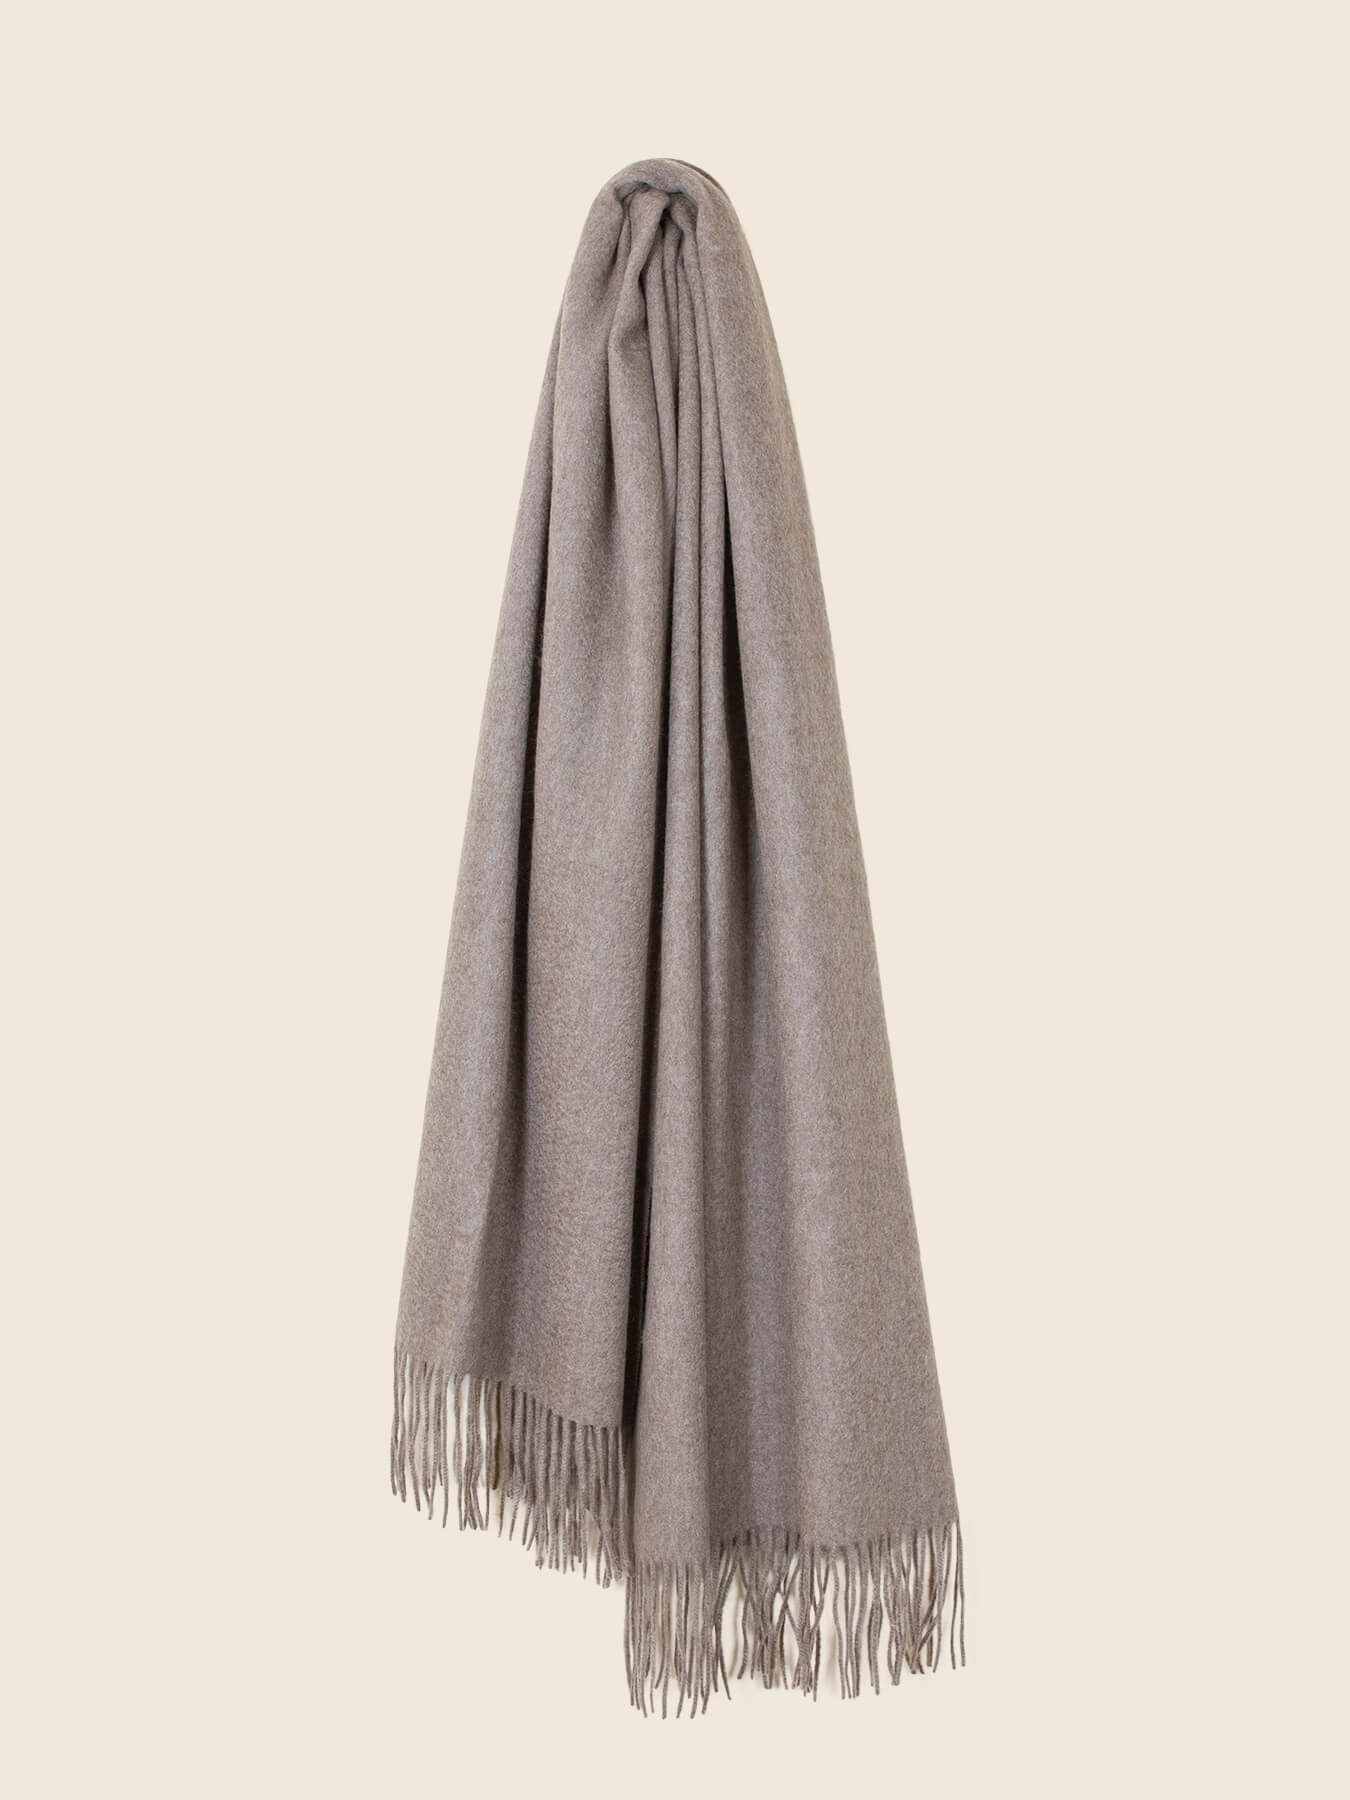 Staple Plain Cashmere Shawl Taupe 2